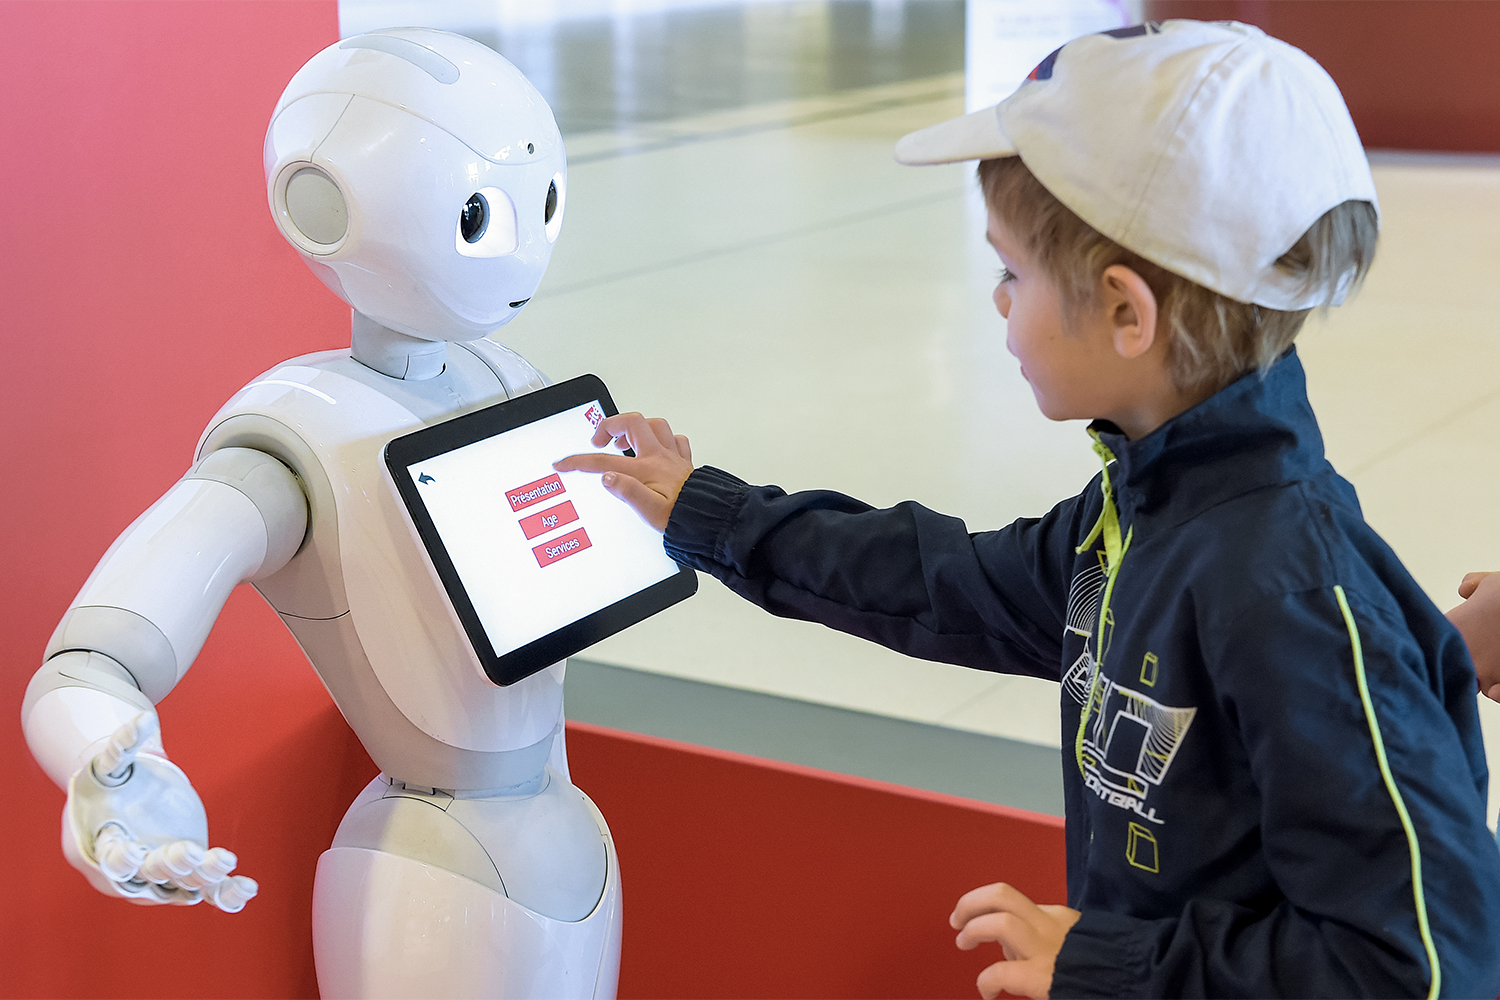 Applications and Uses of Artificial intelligence in education